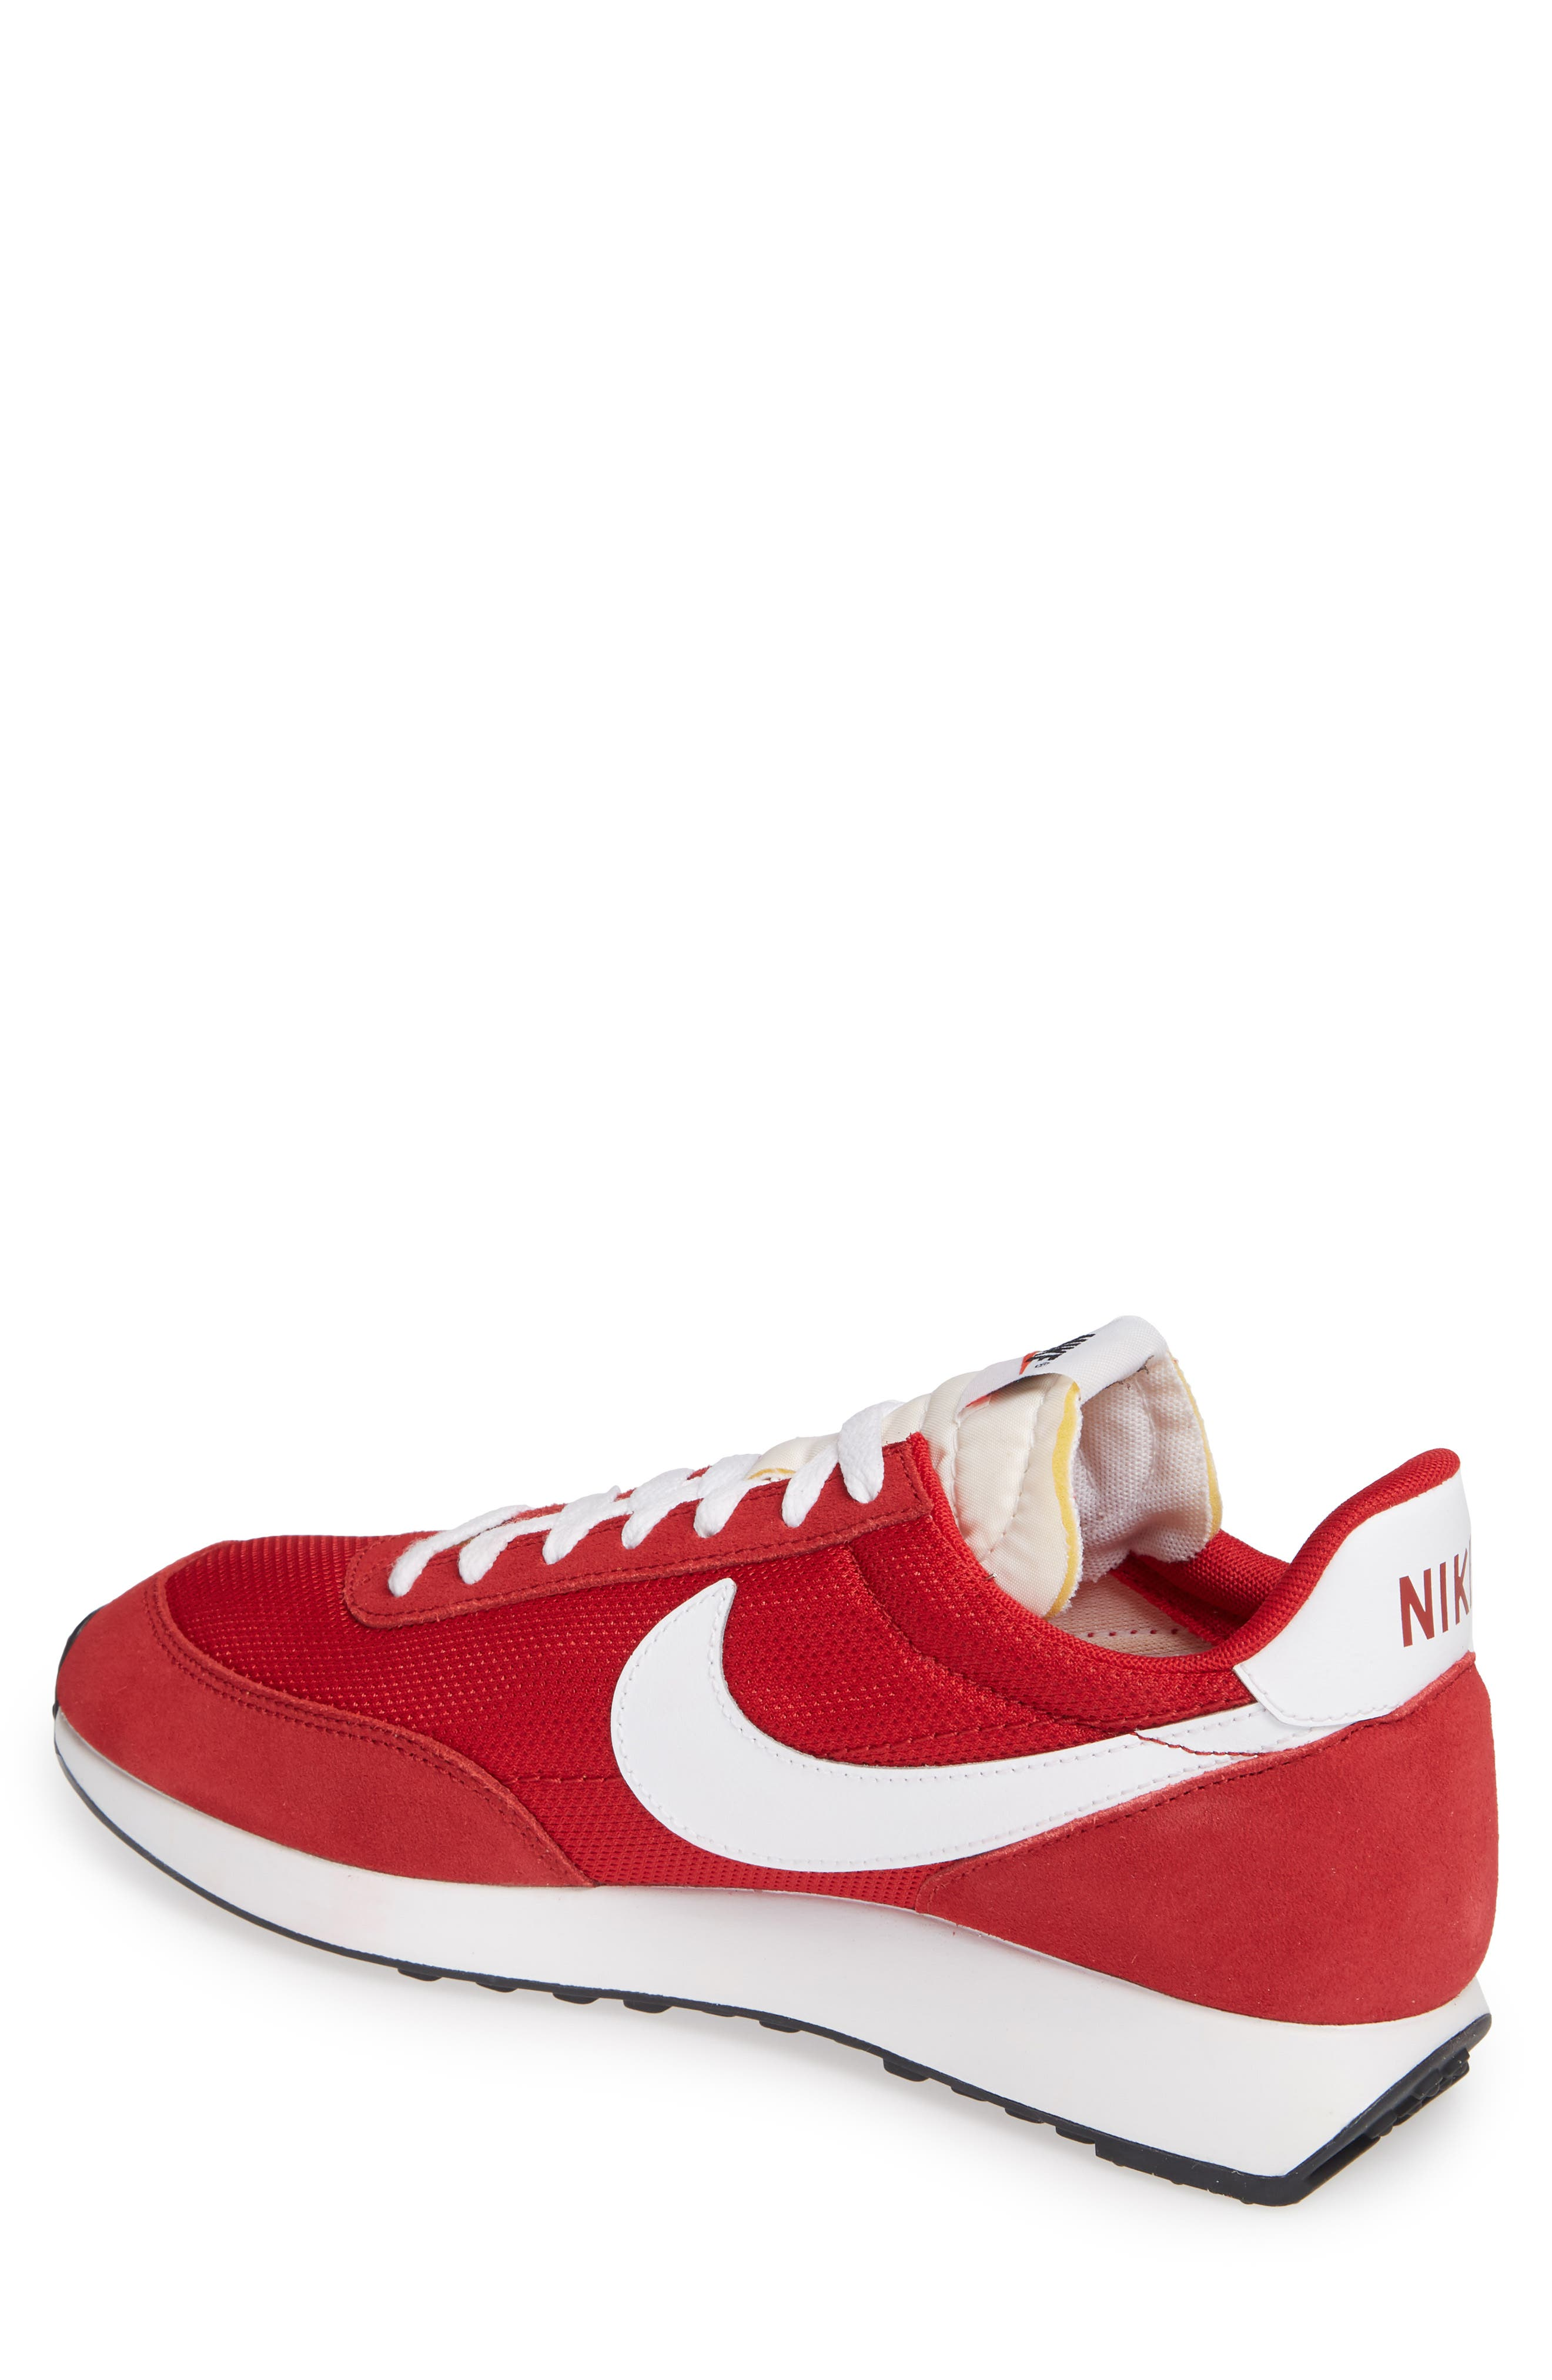 4eaa56fe674 Men s Nike Shoes